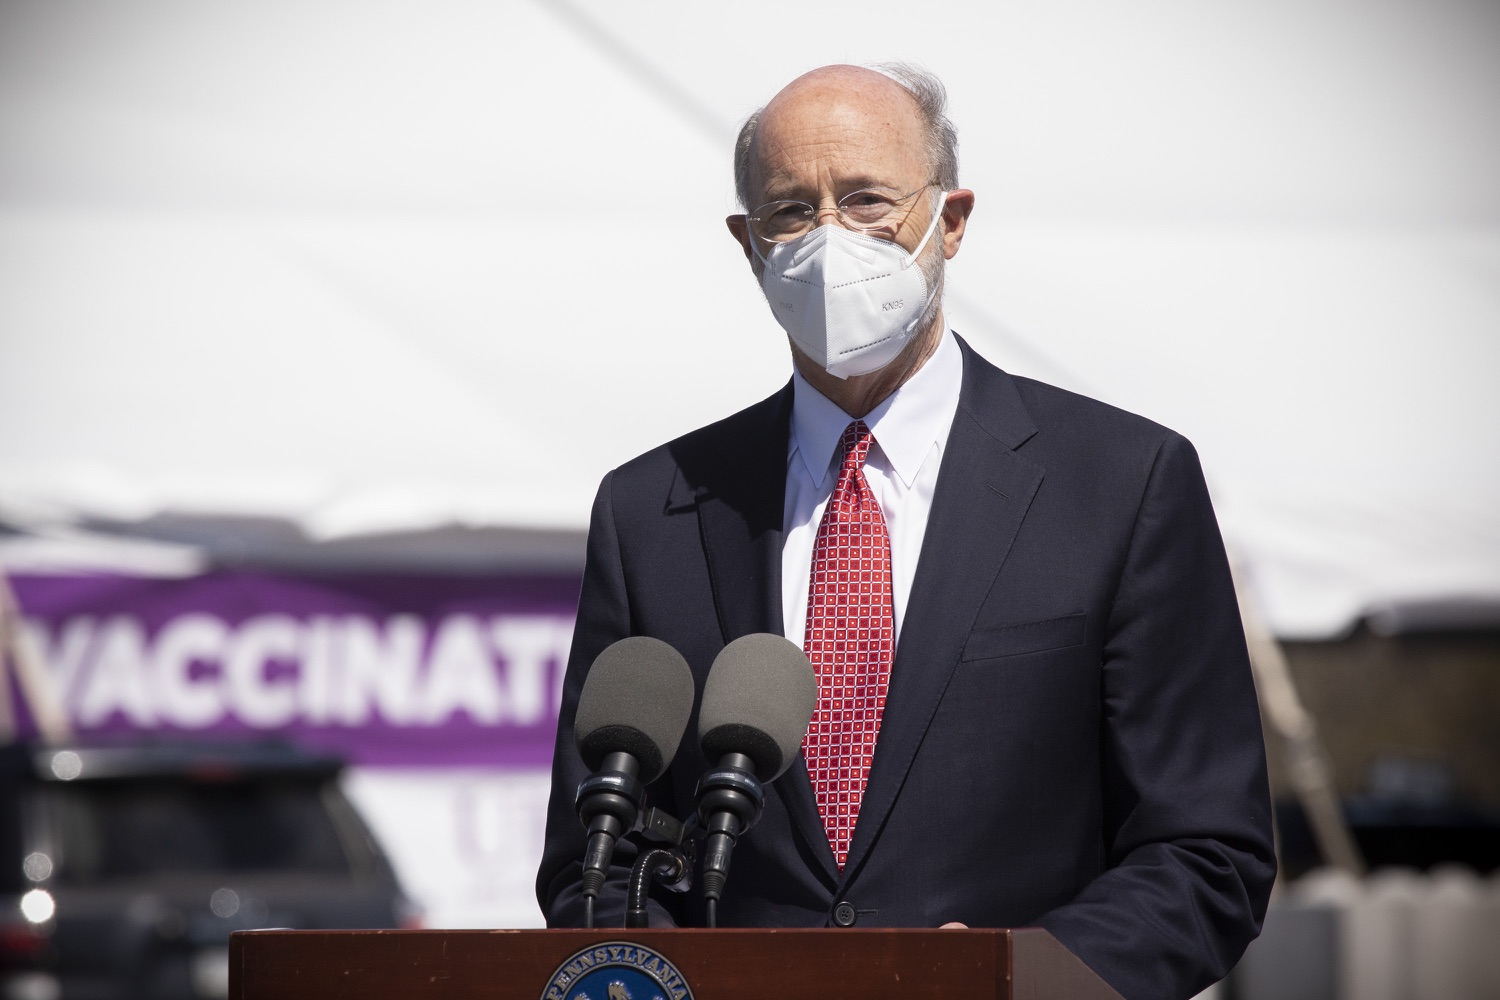 """<a href=""""https://filesource.wostreaming.net/commonwealthofpa/photo/18631_gov_hacc_vaccine_dz_007.jpg"""" target=""""_blank"""">⇣Download Photo<br></a>Pennsylvania Governor Tom Wolf speaking with the press.  Governor Wolf today visited the COVID-19 drive-thru mass vaccination clinic for Dauphin County residents at Harrisburg Area Community College. The drive-thru clinic was developed in partnership with UPMC Pinnacle and Dauphin County. He was joined by UPMC Pinnacle President Phil Guarneschelli and Dauphin County Commissioners Mike Pries and George P. Hartwick III.  HARRISBURG, PA -- March 30, 2021"""